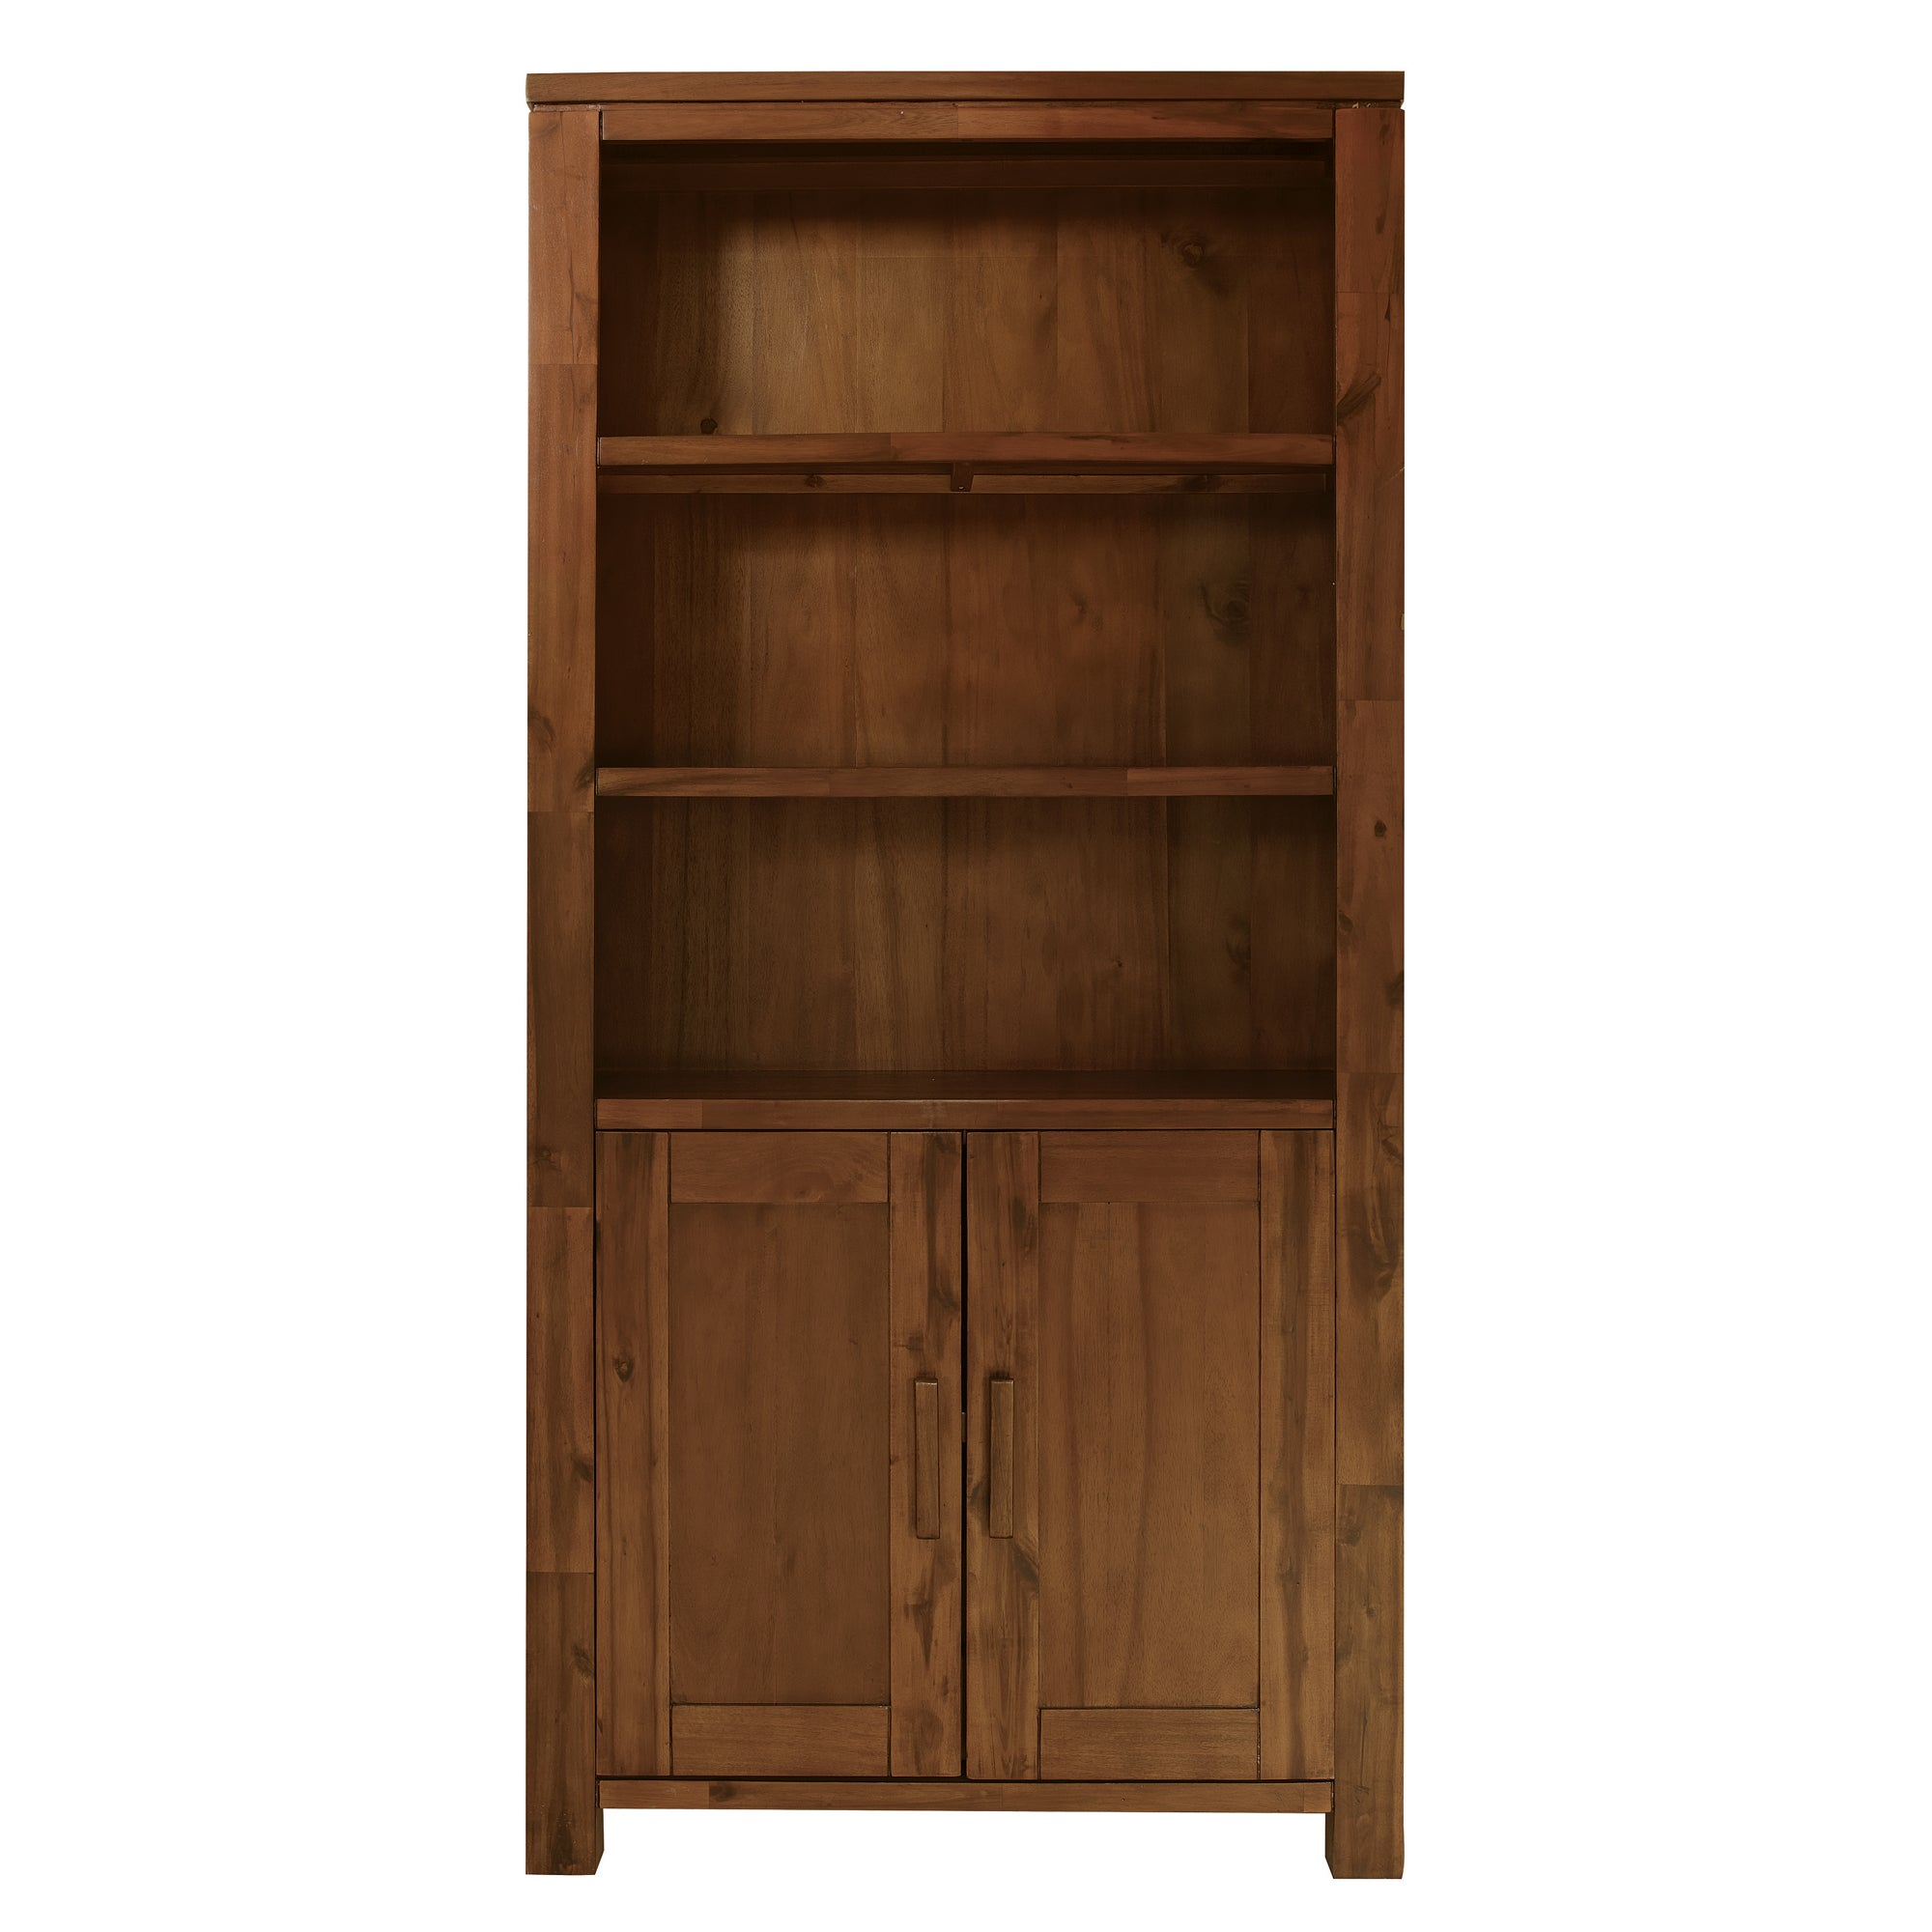 Seville Acacia Dark Wood Bookcase